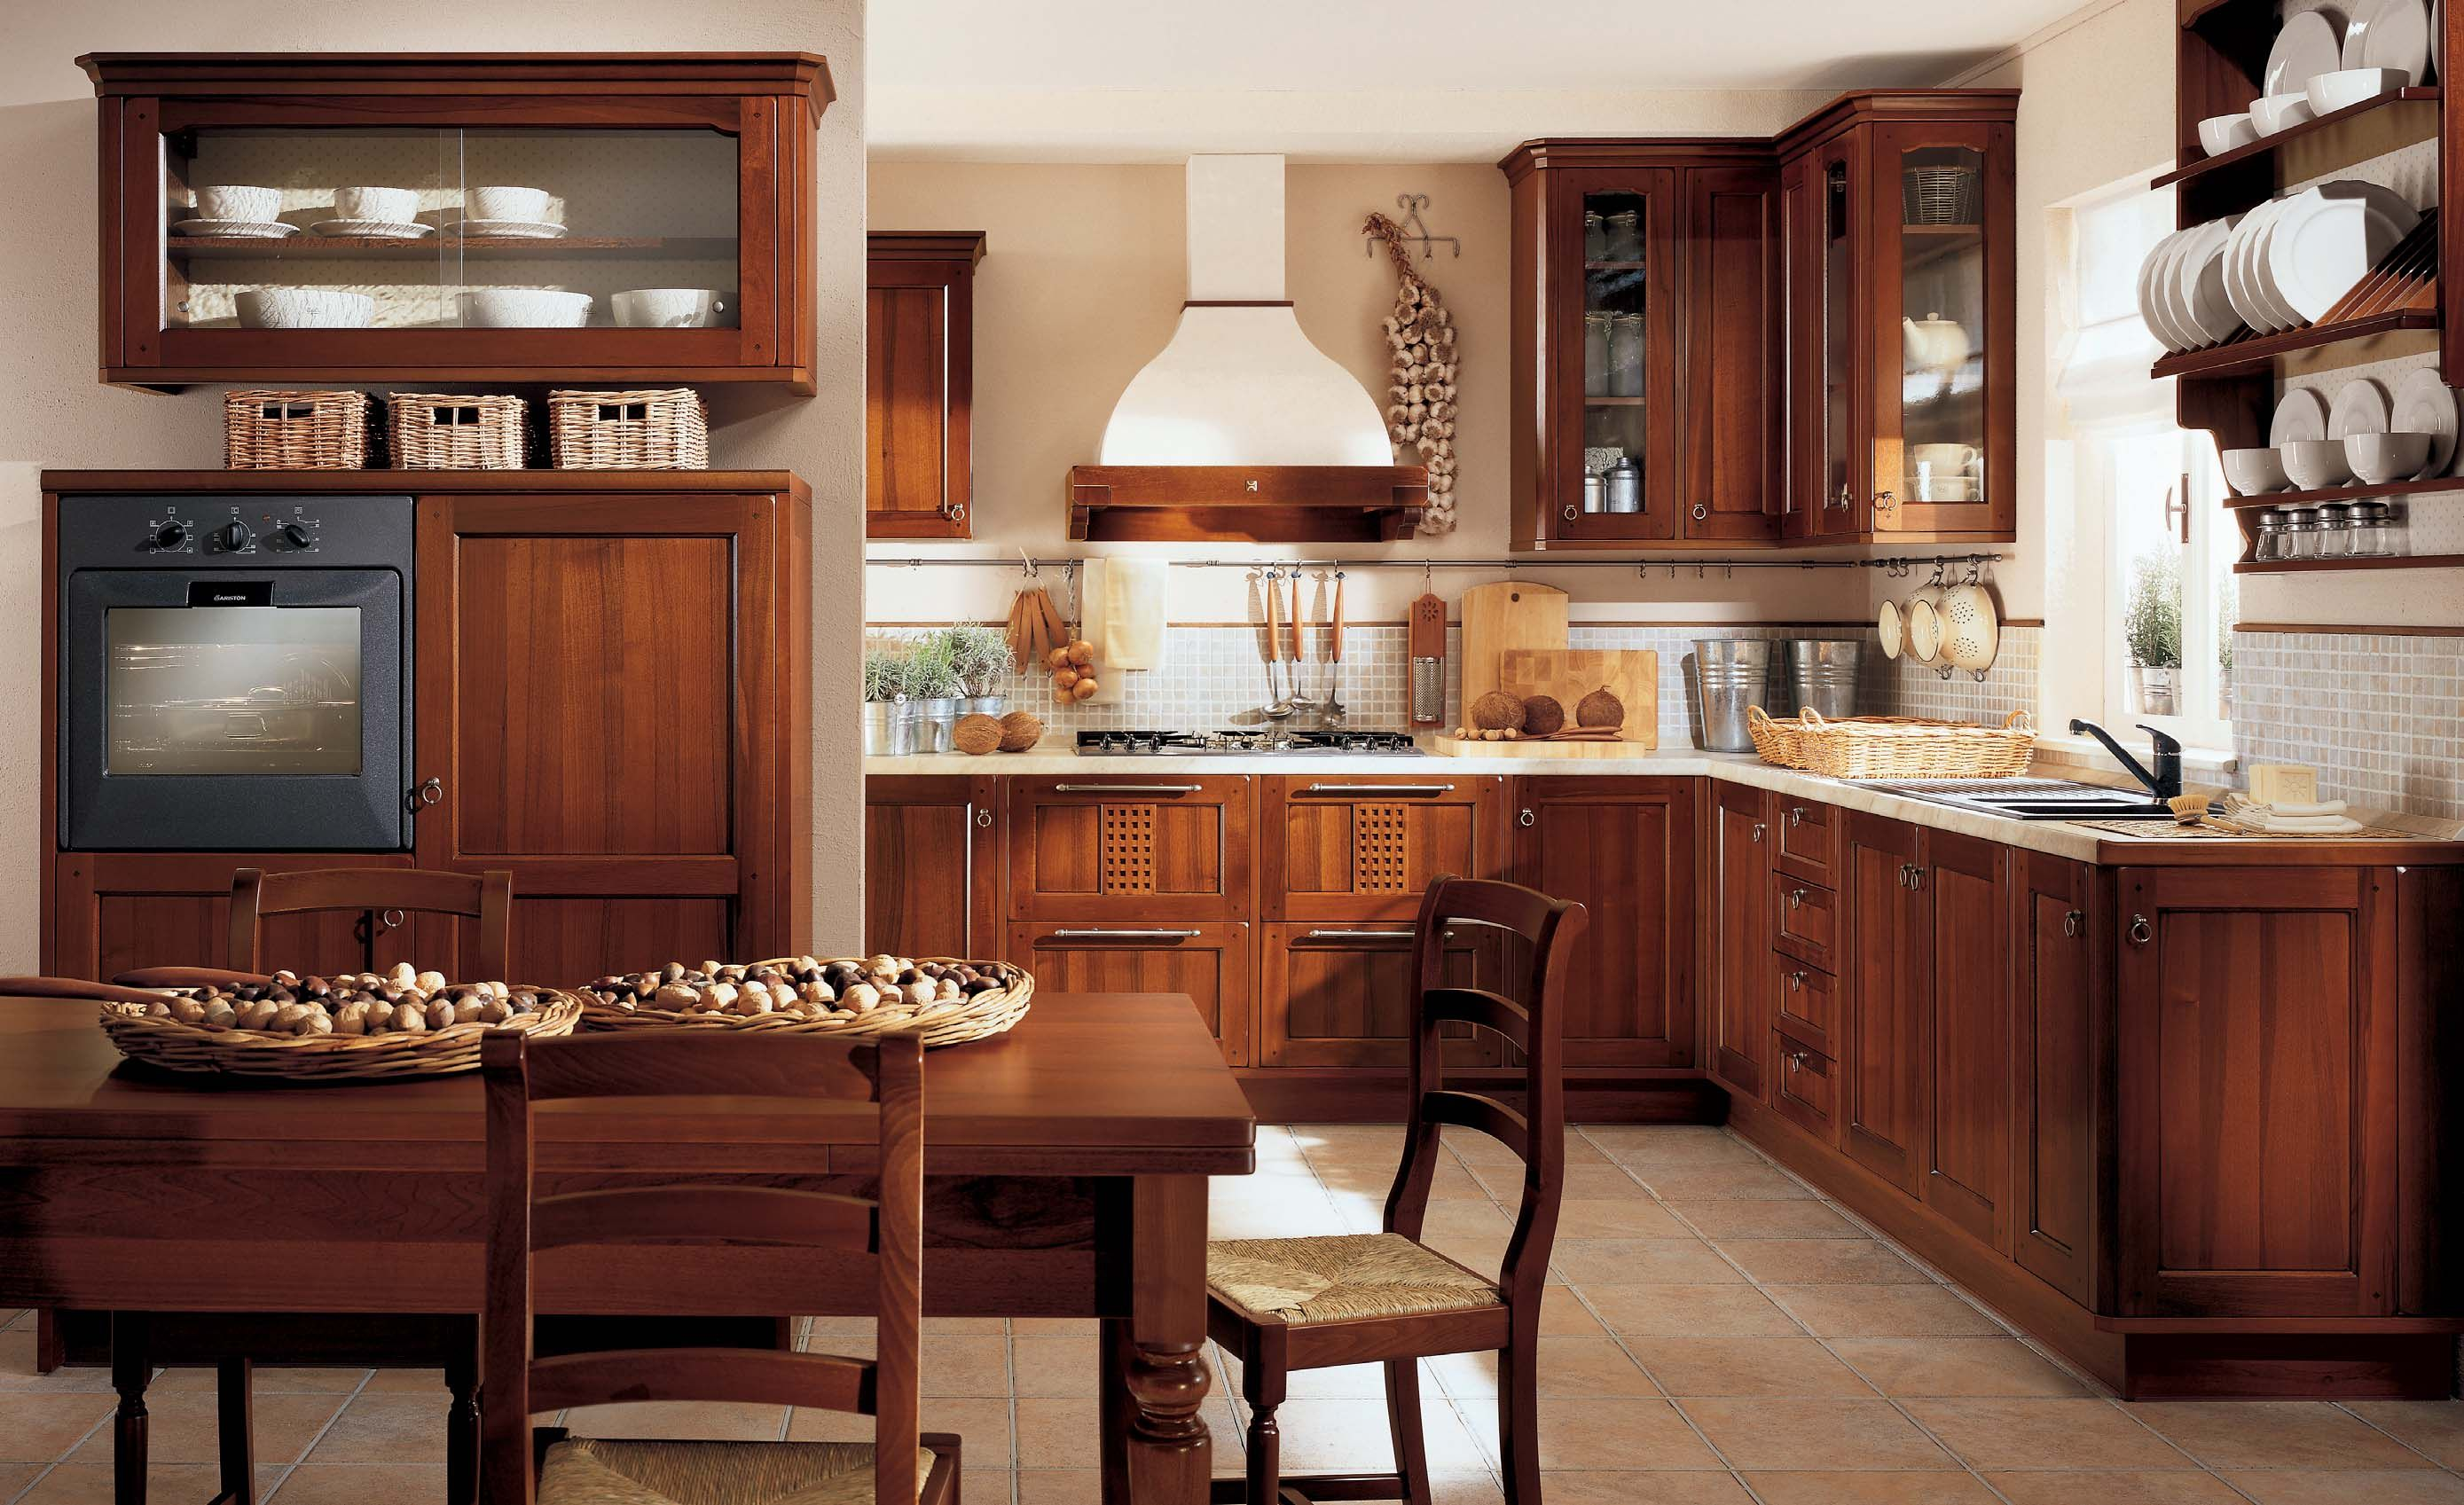 Interior Designs For Kitchens Kitchensdesign .designs From Berloni » Small Classic